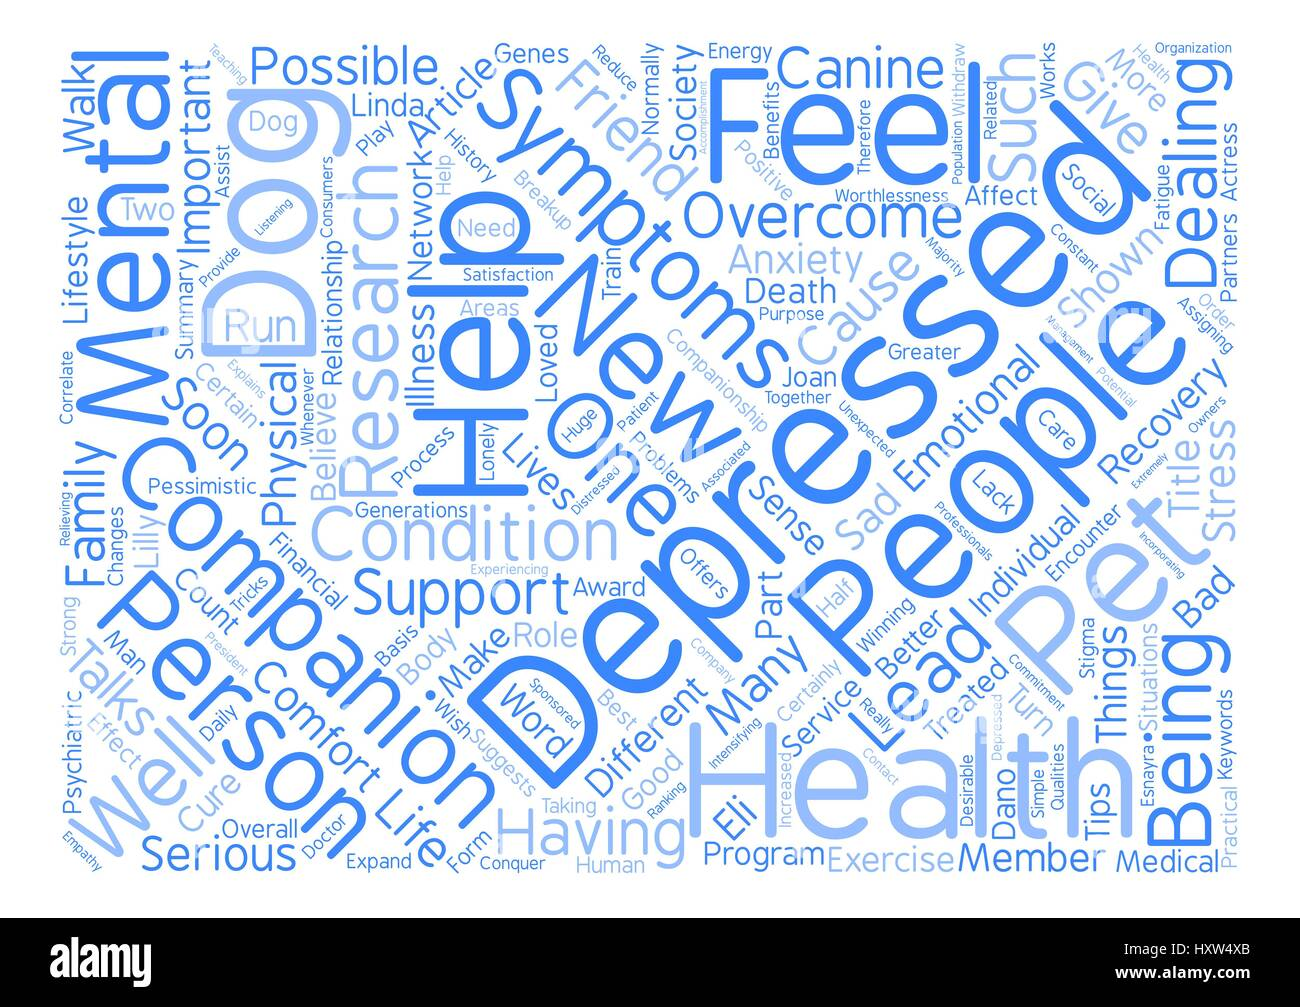 Canine Companions Cure text background word cloud concept - Stock Vector